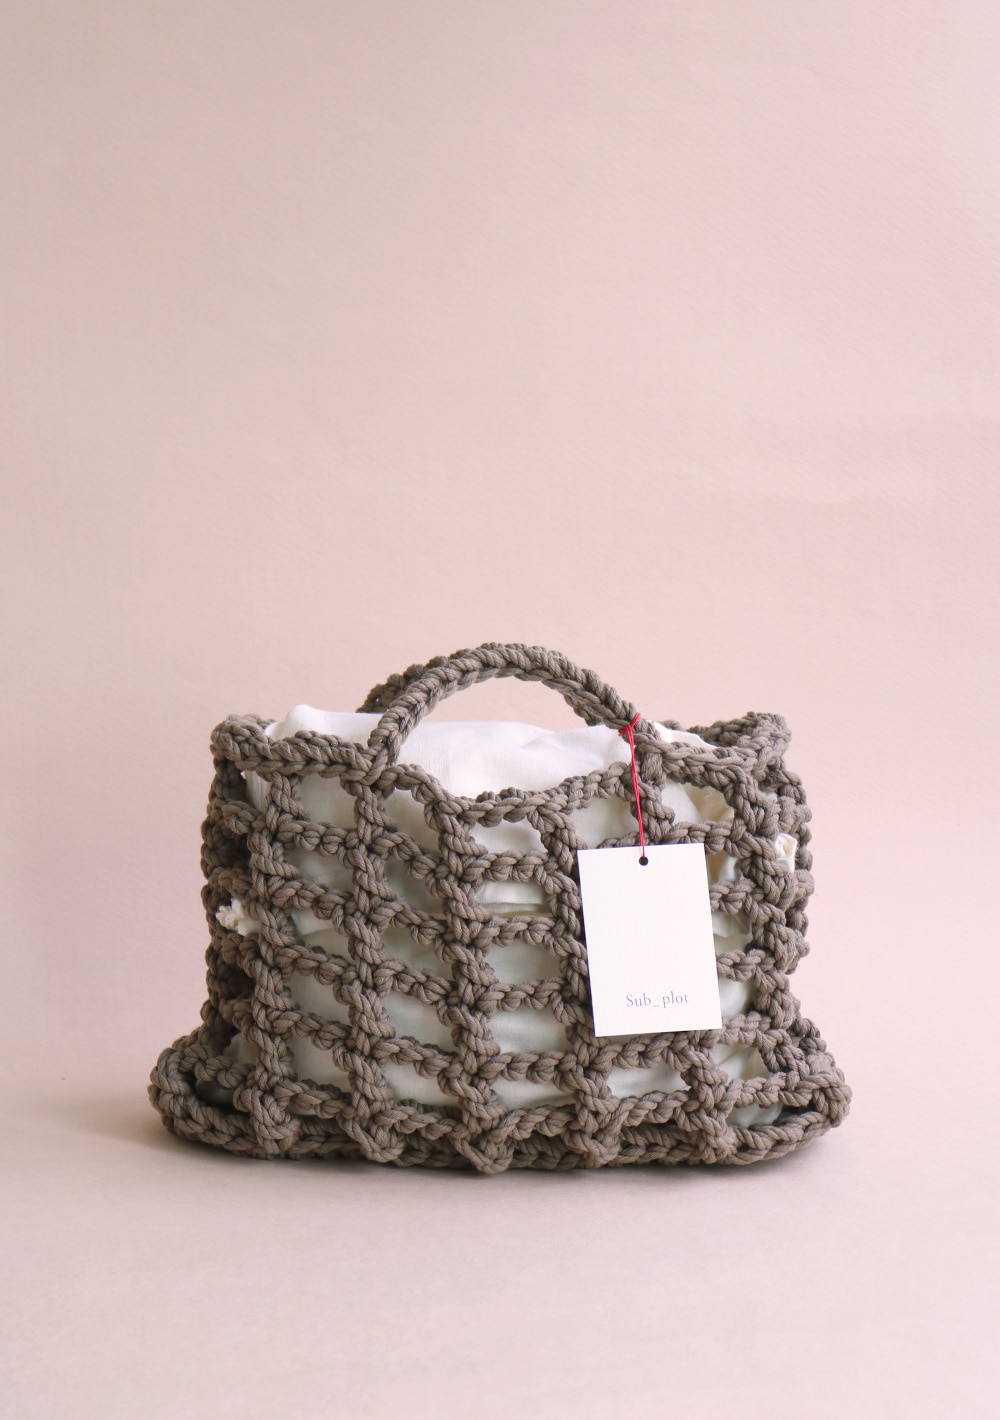 Subplot_crochet net bag_ 01 brown